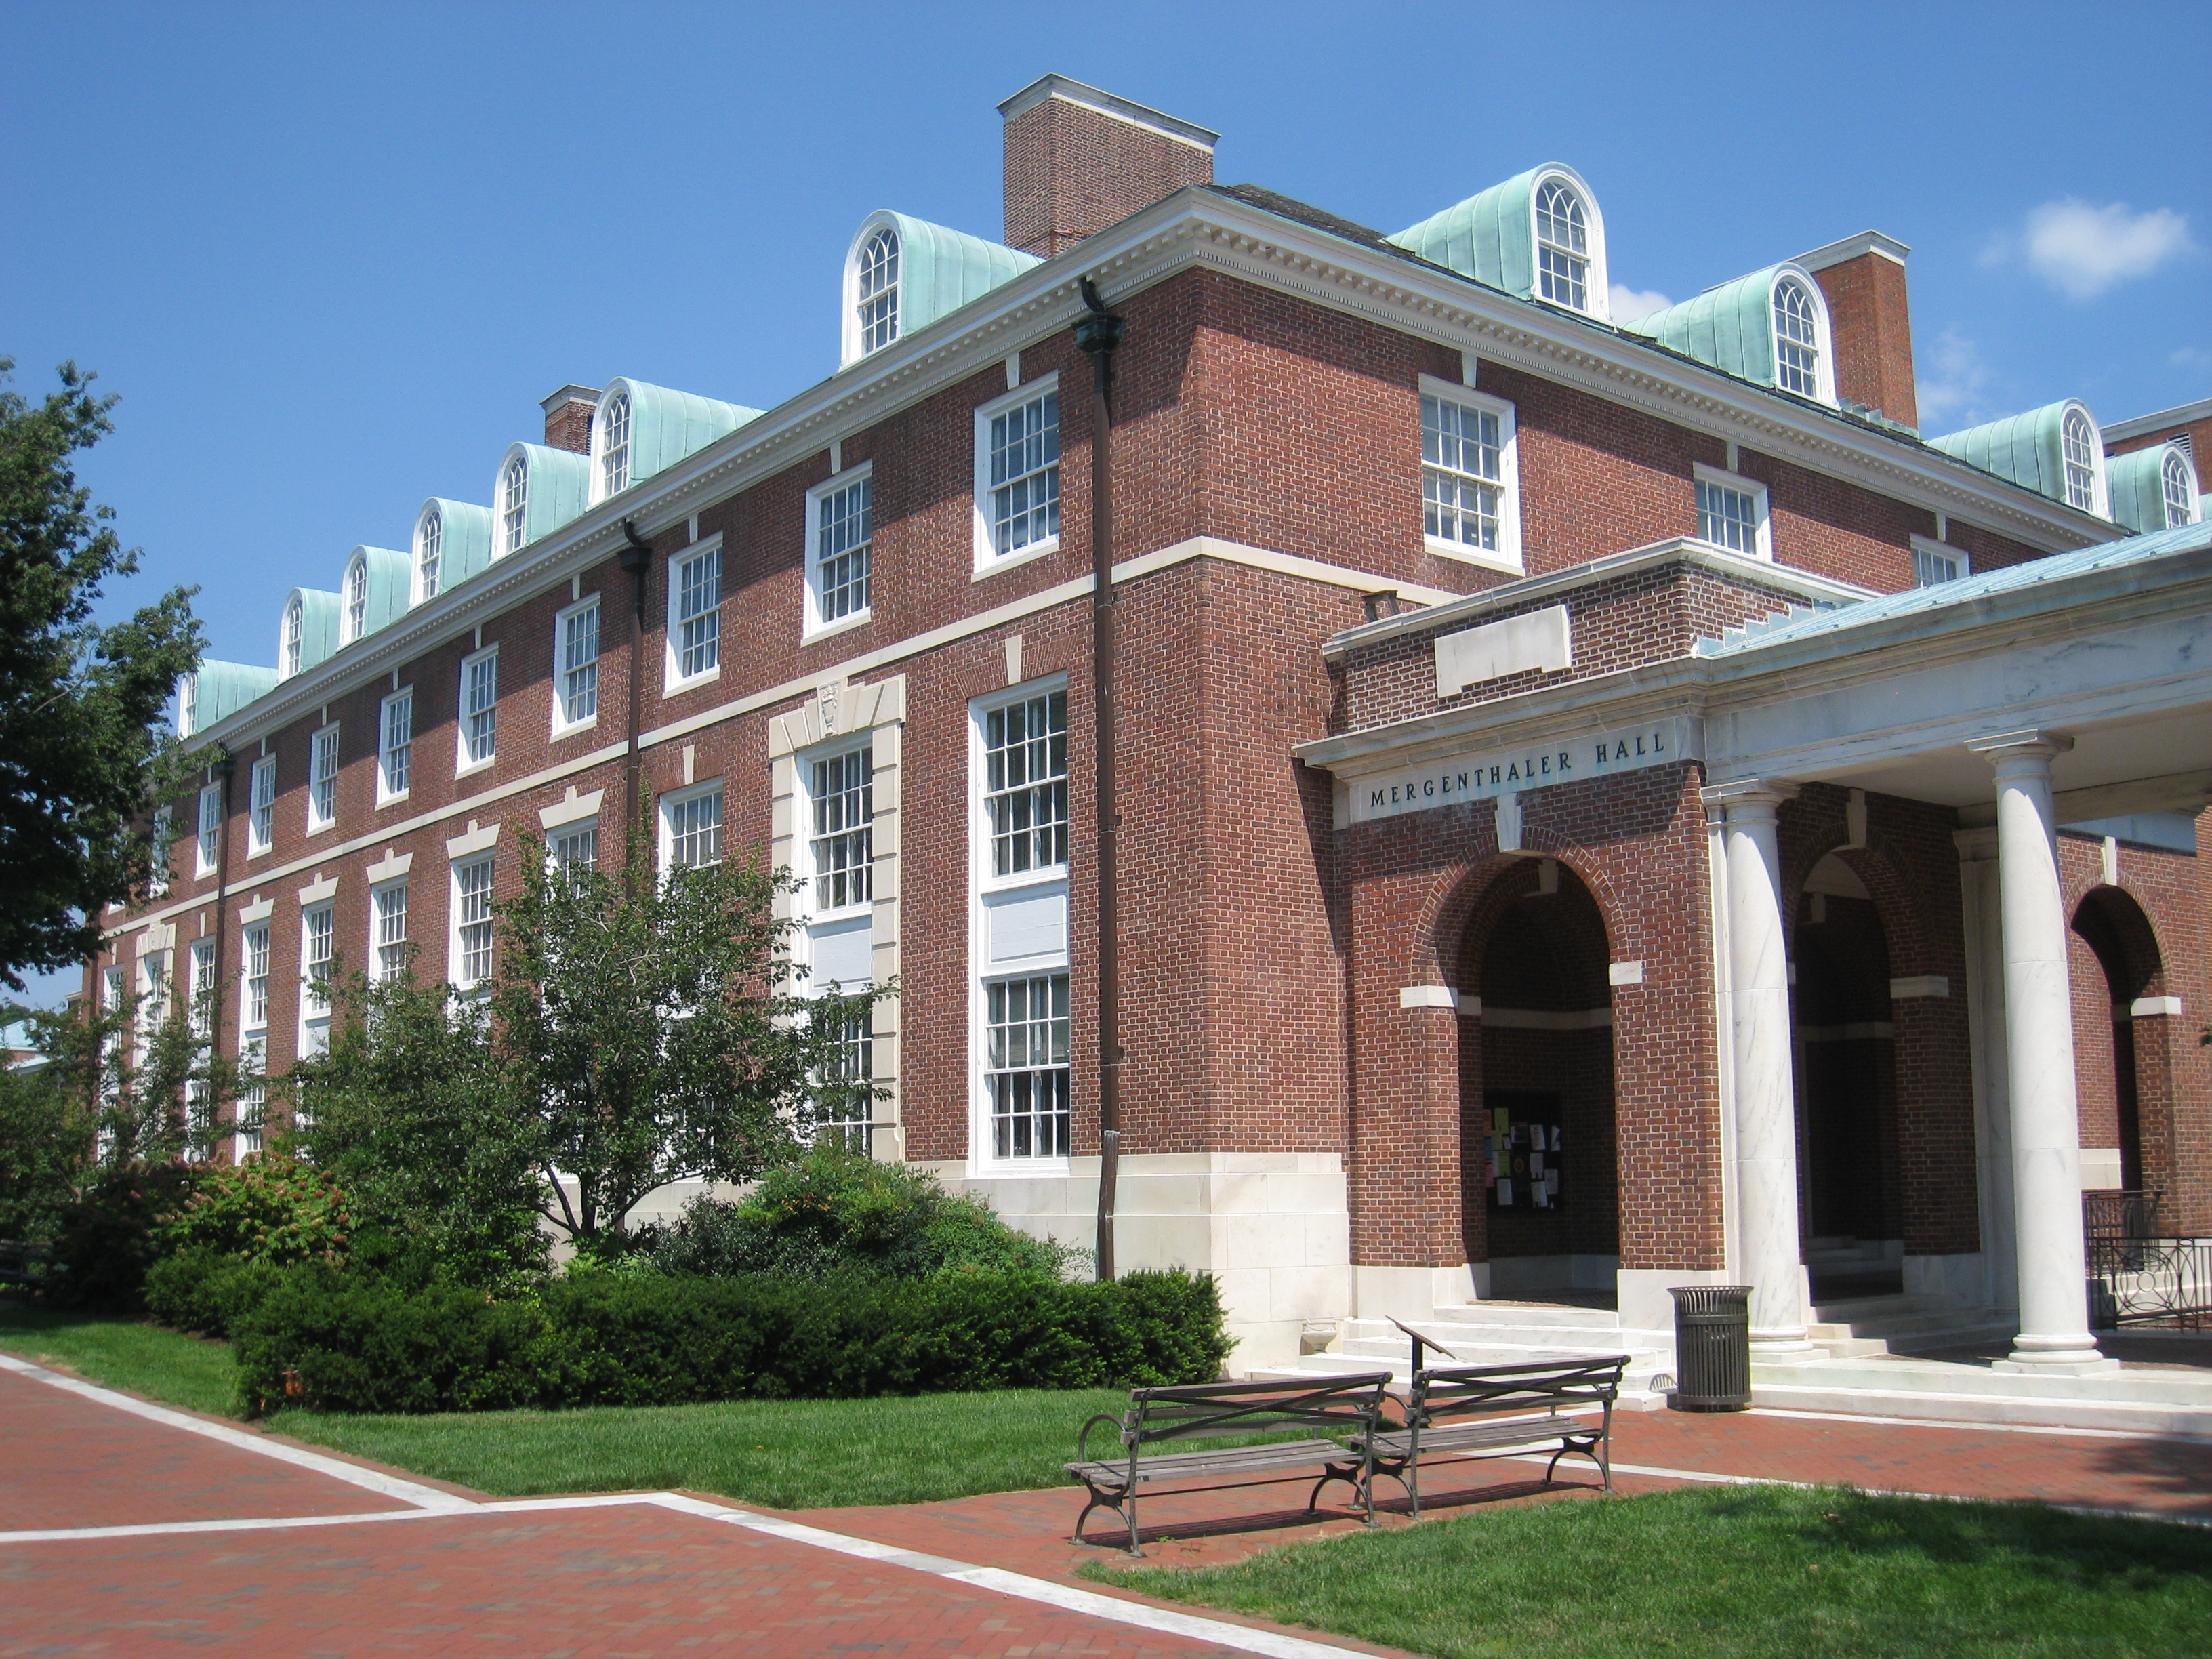 Johns Hopkins University | Admissions, Average Test Scores